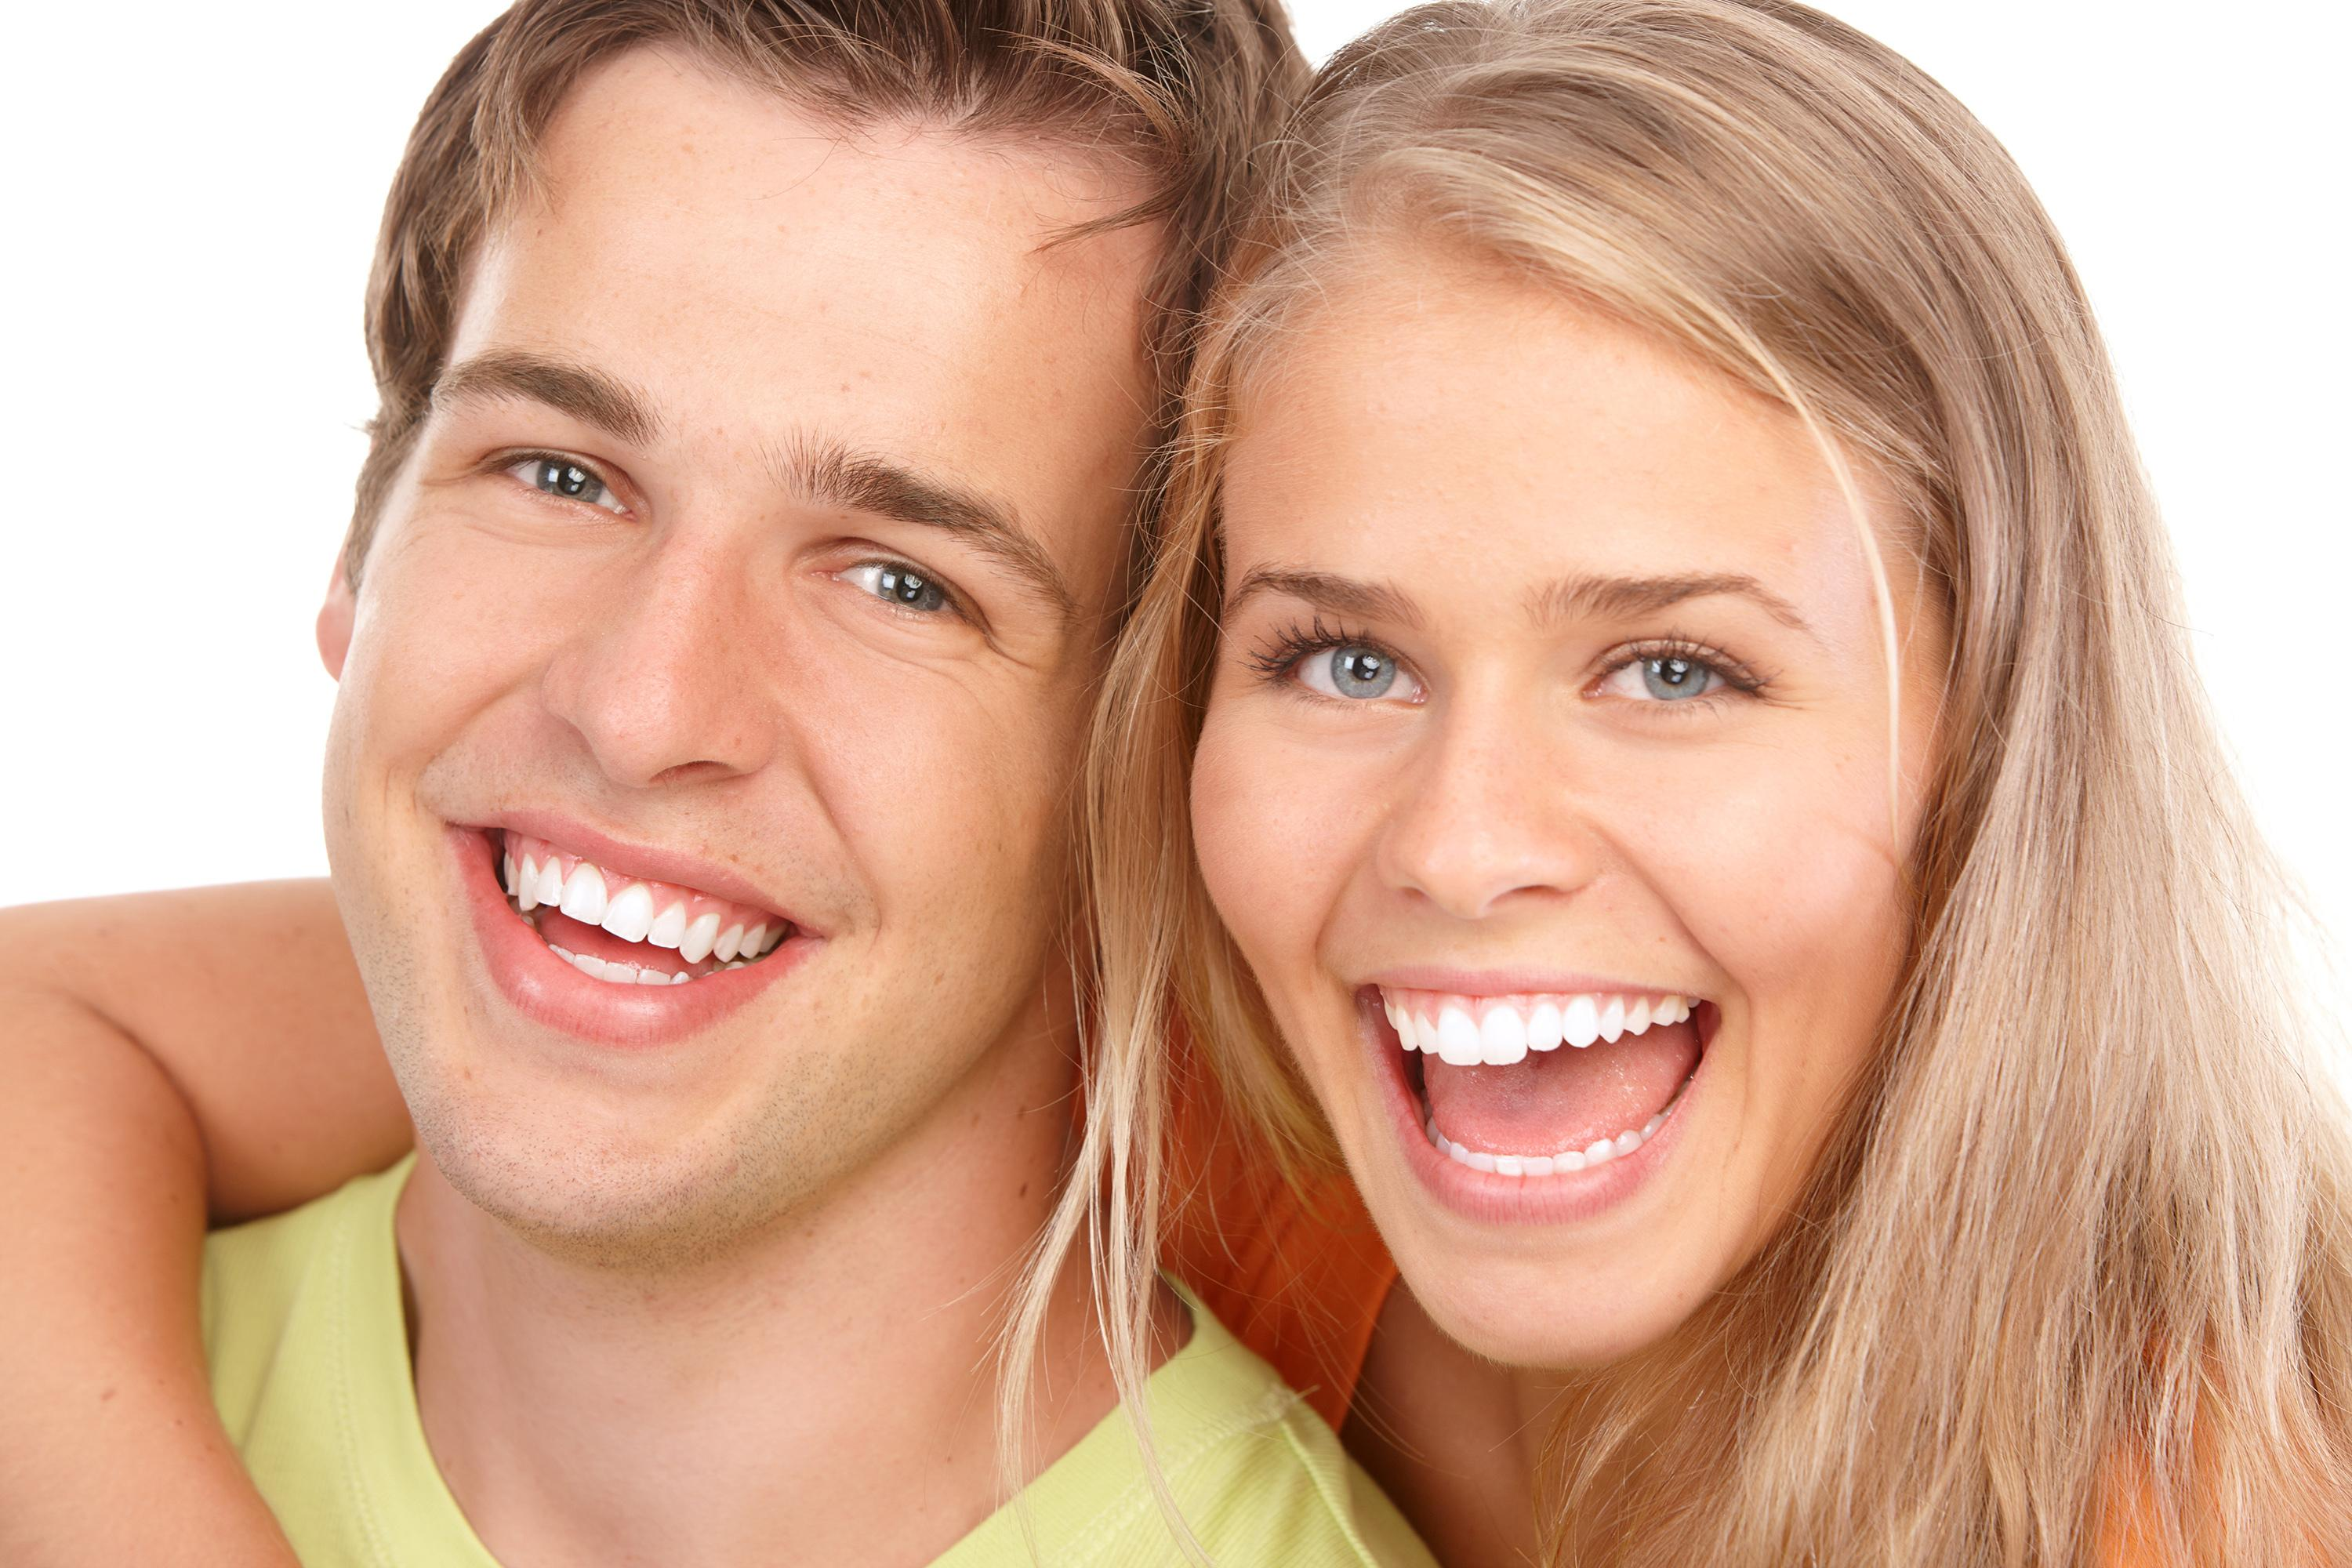 Victory Smiles Offers Teeth Whitening For Teenagers